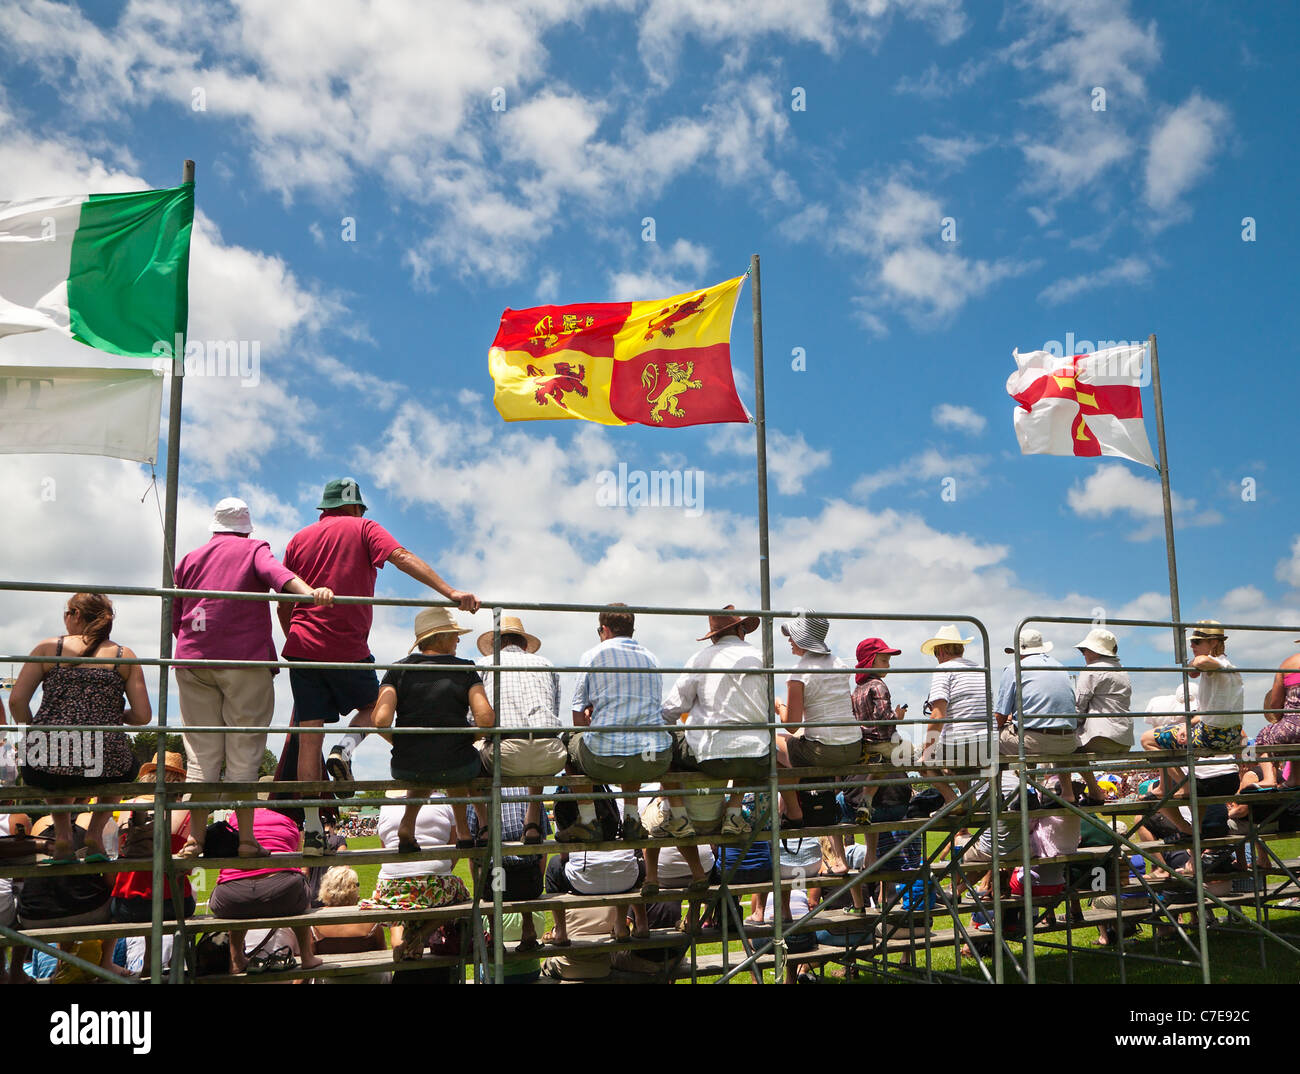 Spectators at the annual Highland Games organised by the local Caledonian Society. Waipu, Northland, North Island, - Stock Image